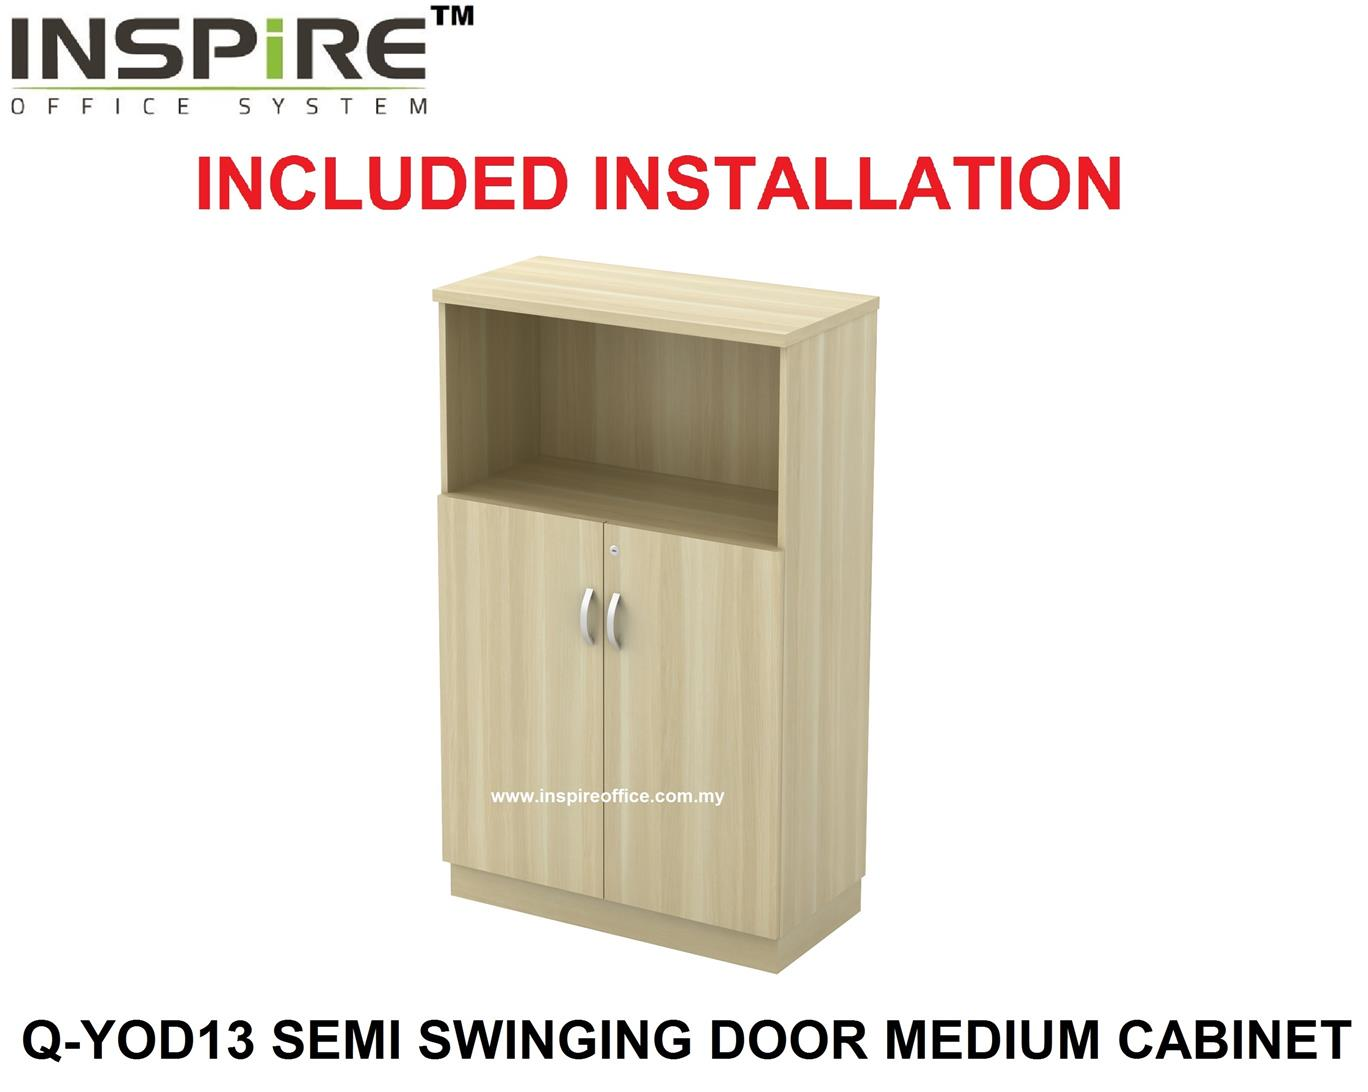 EXORA SERIES Q-YOD13 SEMI SWINGING DOOR MEDIUM CABINET